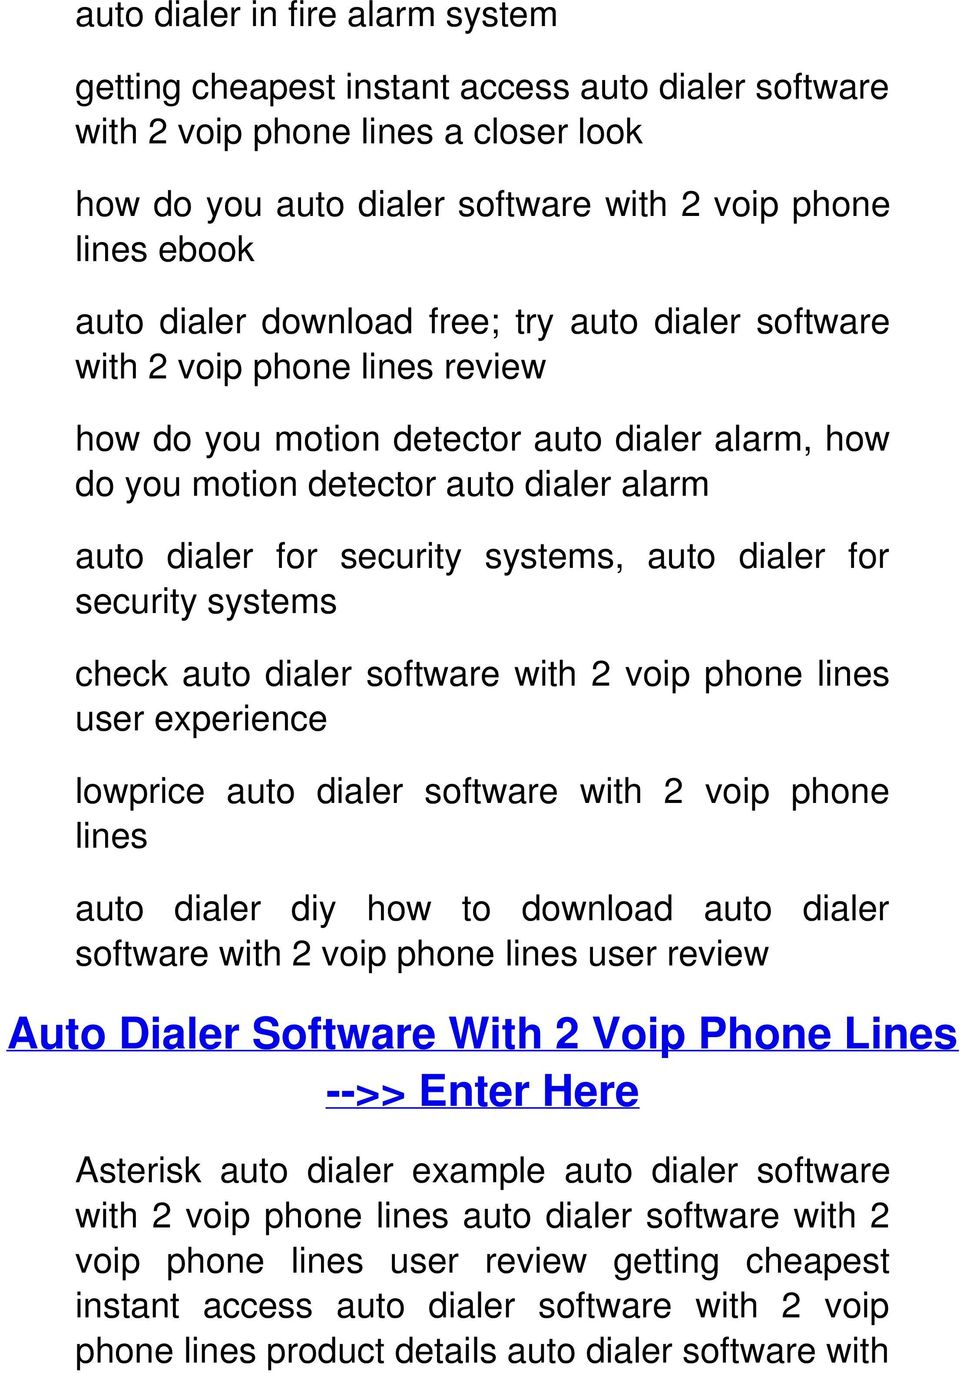 auto dialer for security systems check auto dialer software with 2 voip phone lines user experience lowprice auto dialer software with 2 voip phone lines auto dialer diy how to download auto dialer